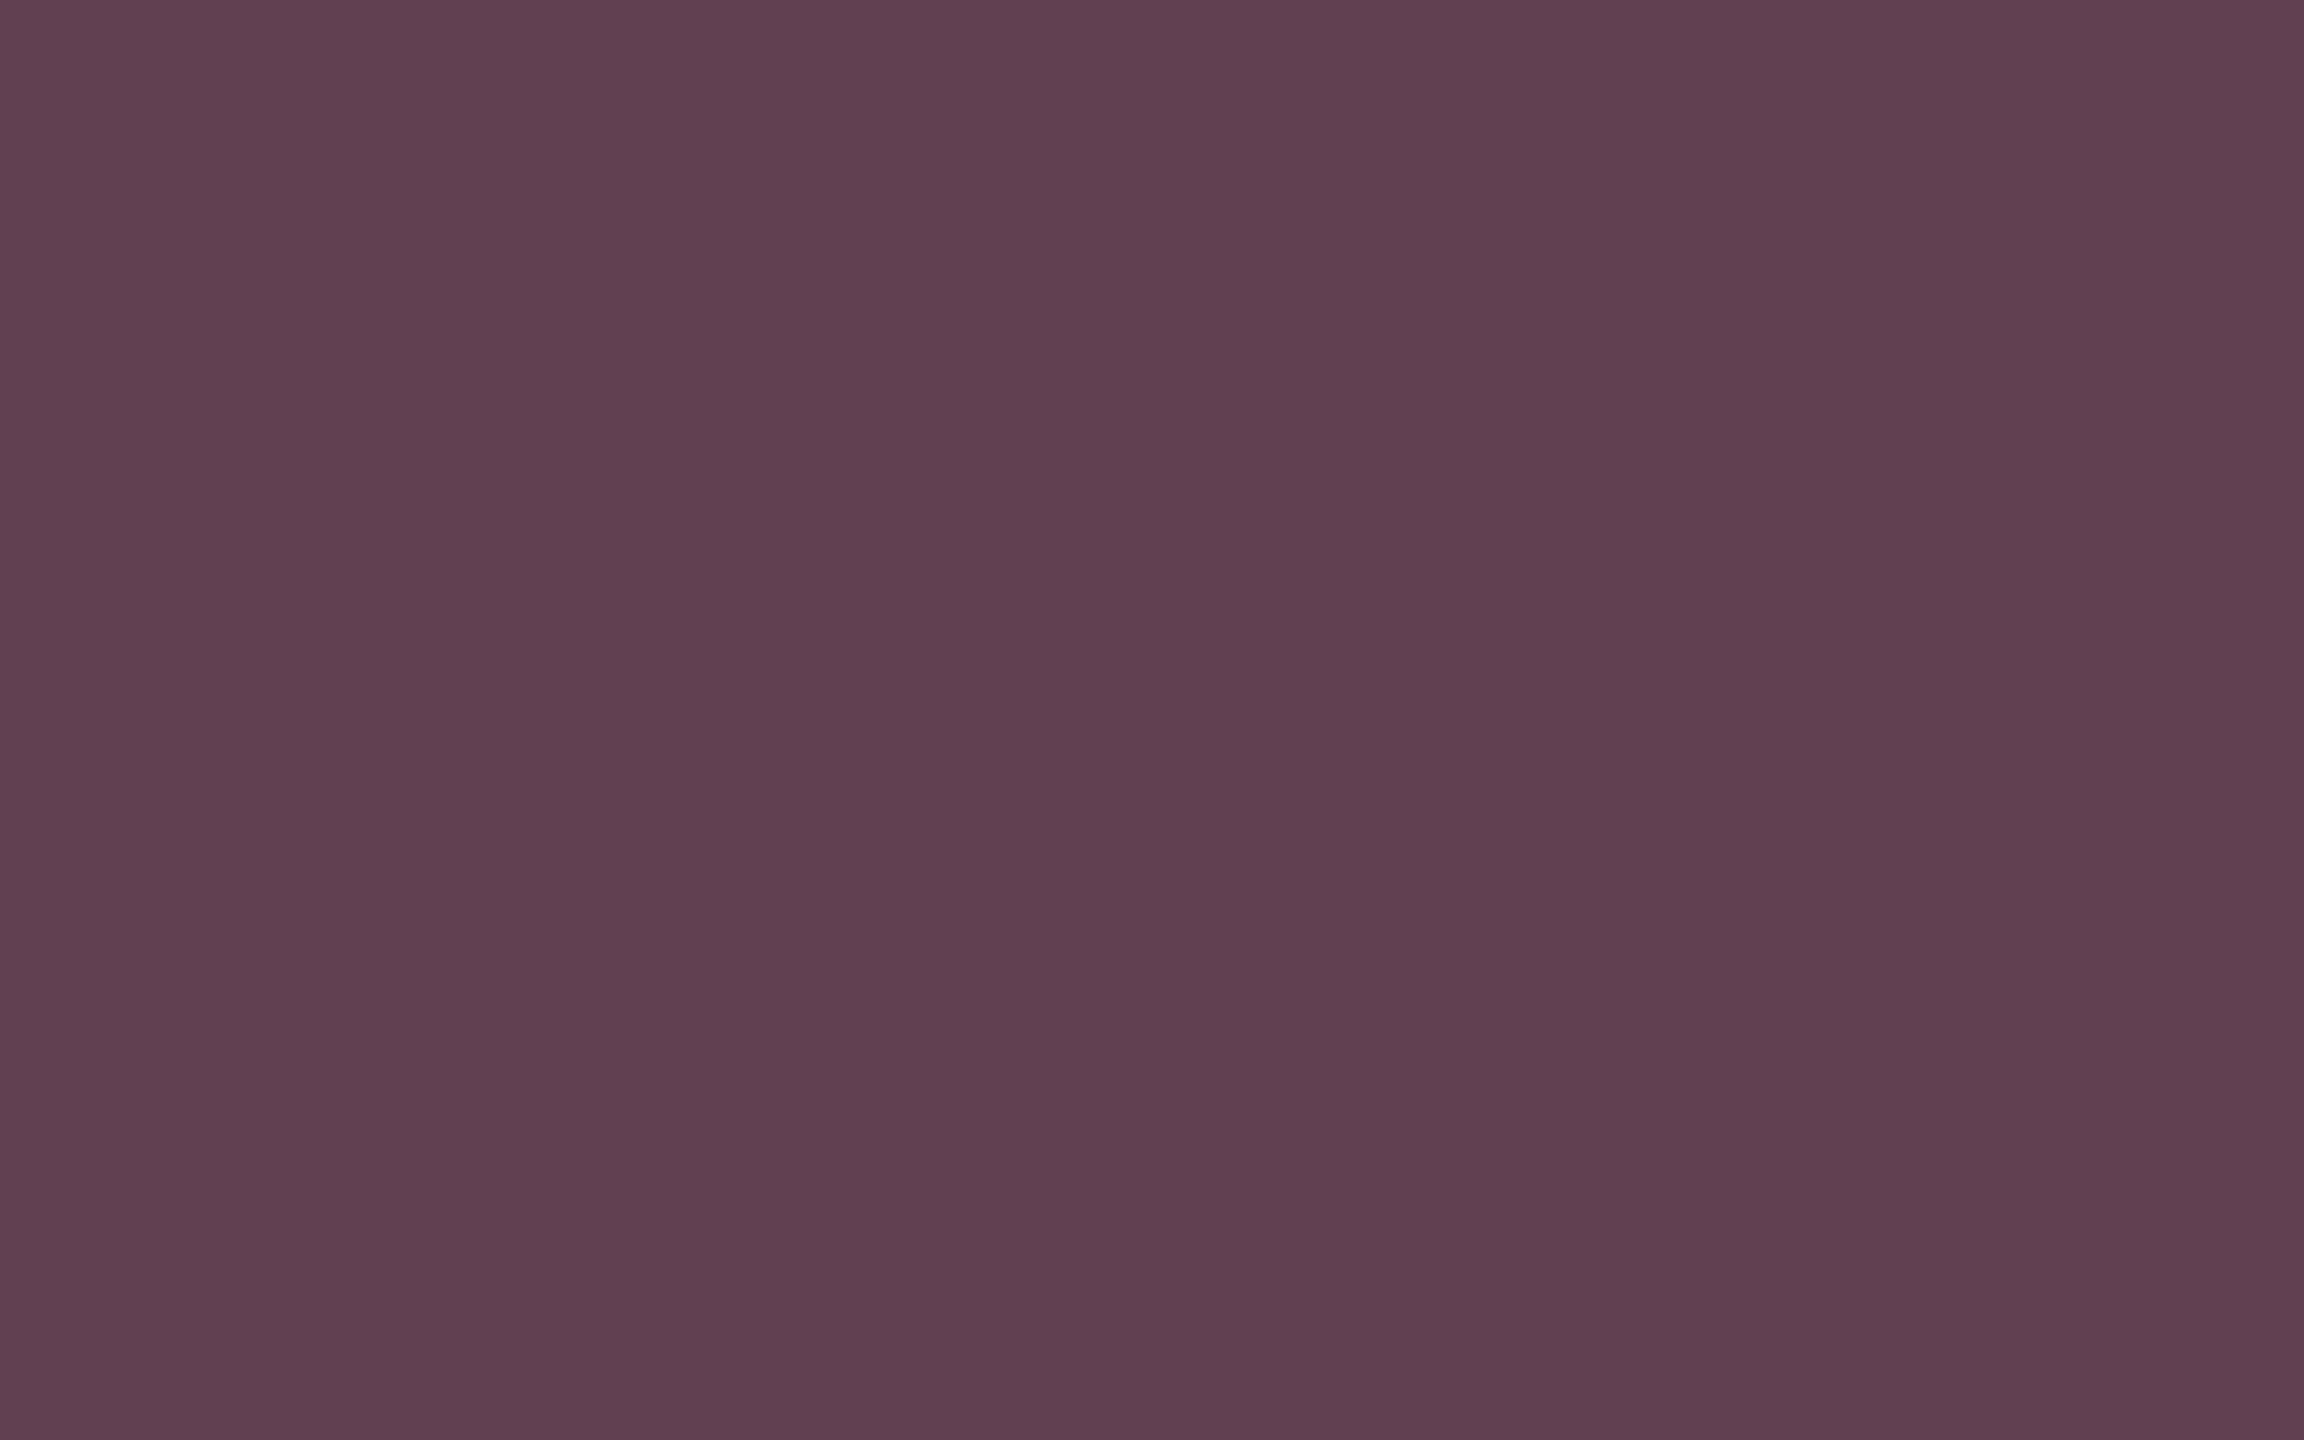 2304x1440 Eggplant Solid Color Background